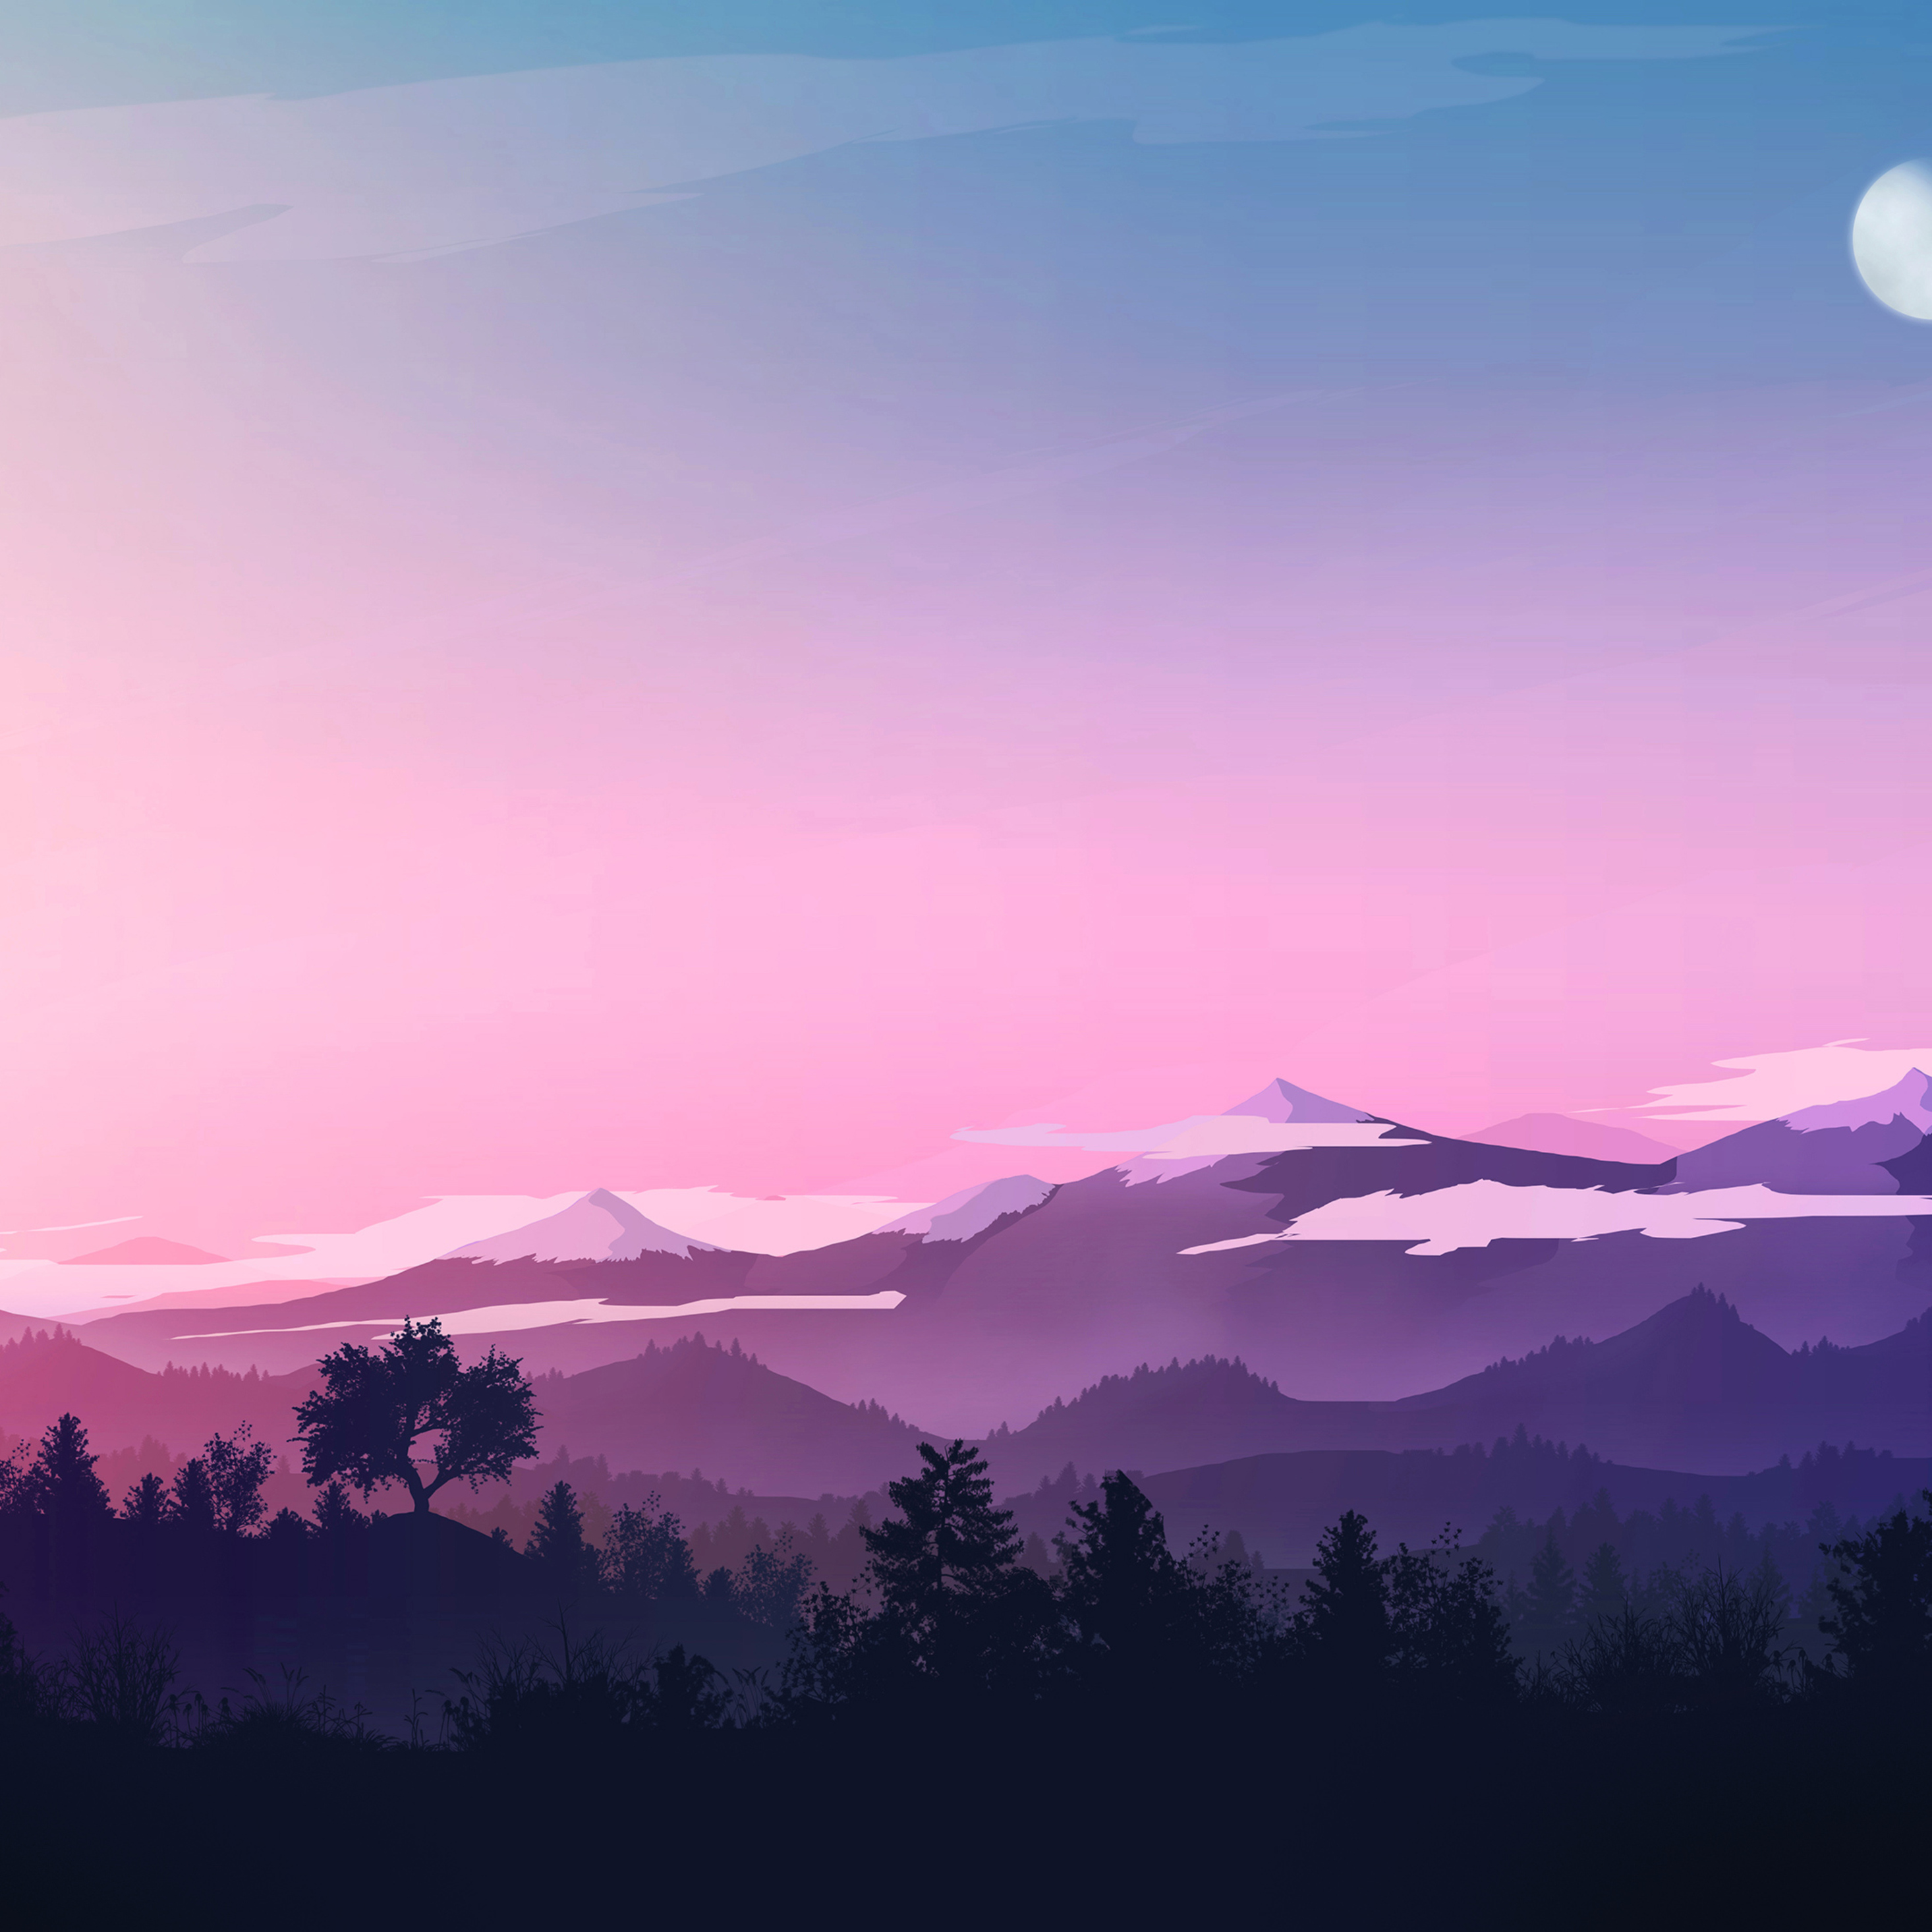 2932x2932 Evening Landscape Minimal 4k Ipad Pro Retina Display Hd 4k Wallpapers Images Backgrounds Photos And Pictures